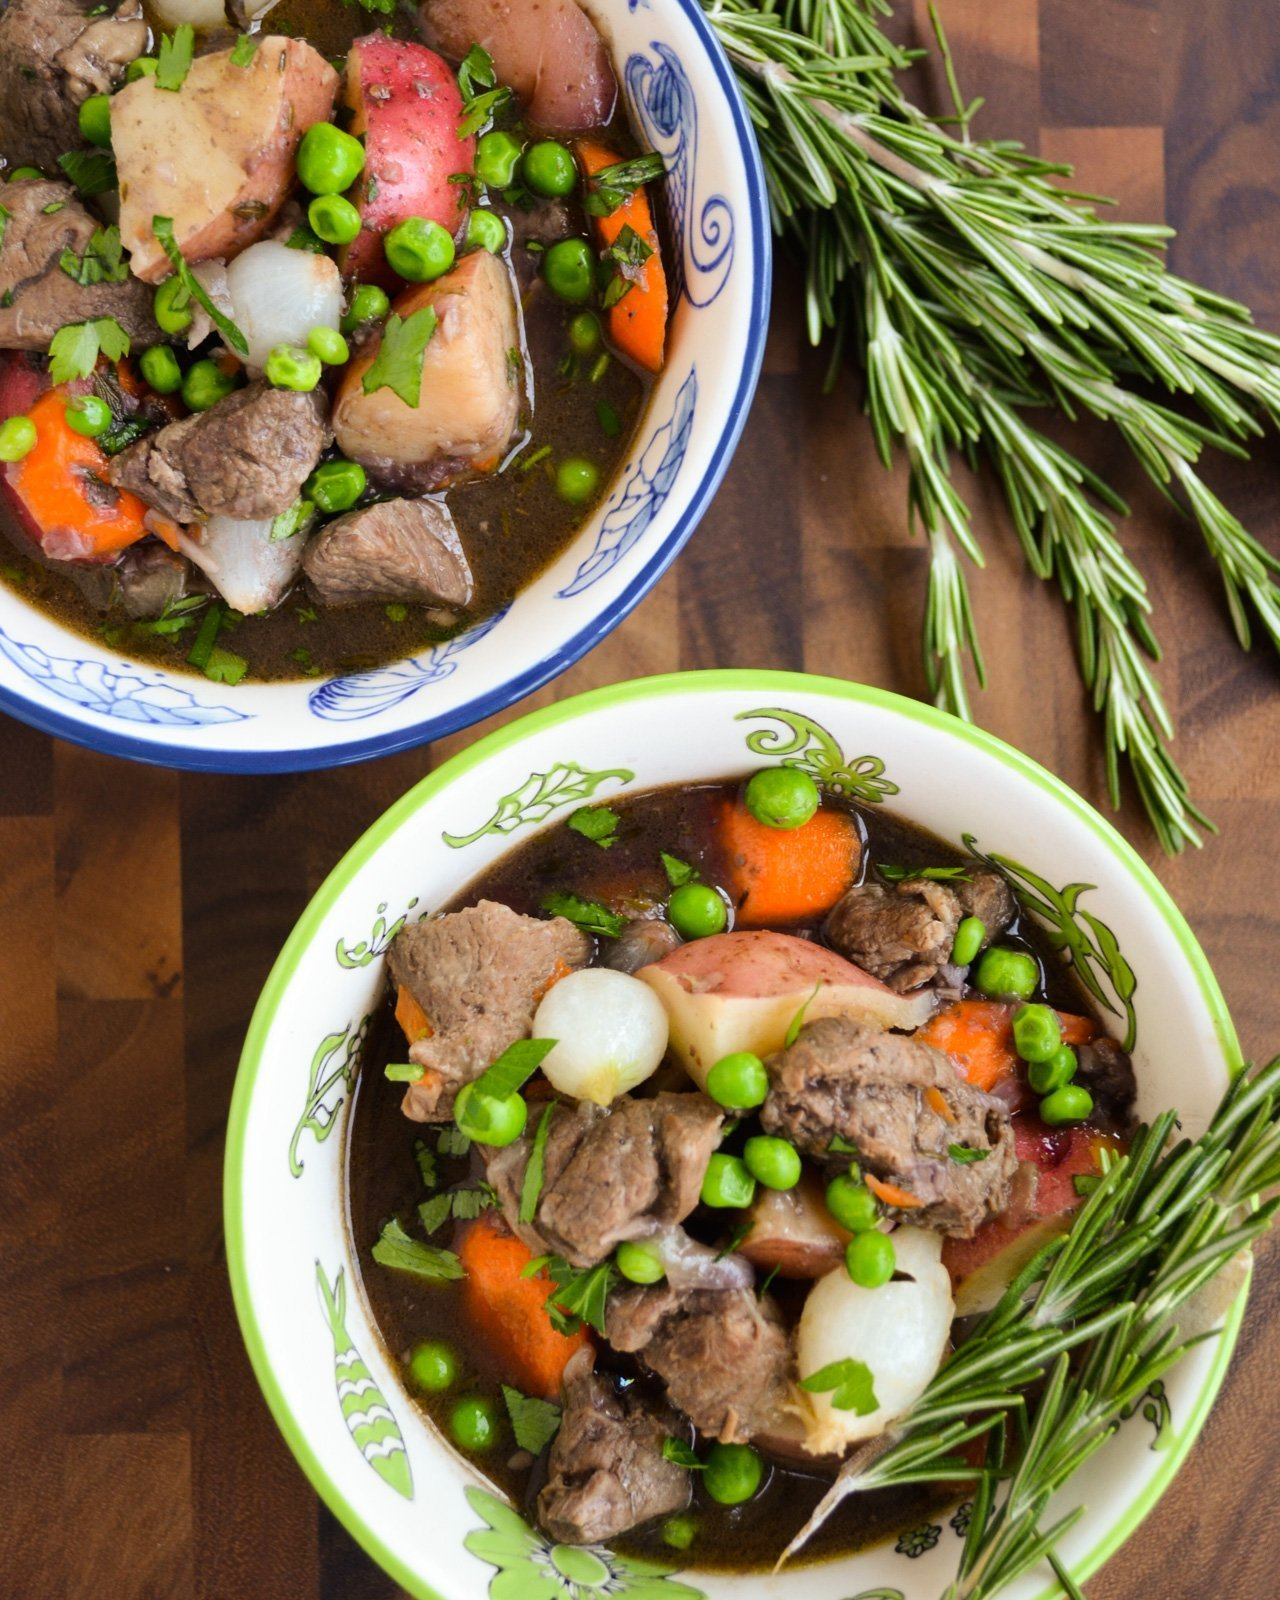 CLASSIC BEEF STEW BLUE JEAN CHEF MEREDITH LAURENCE